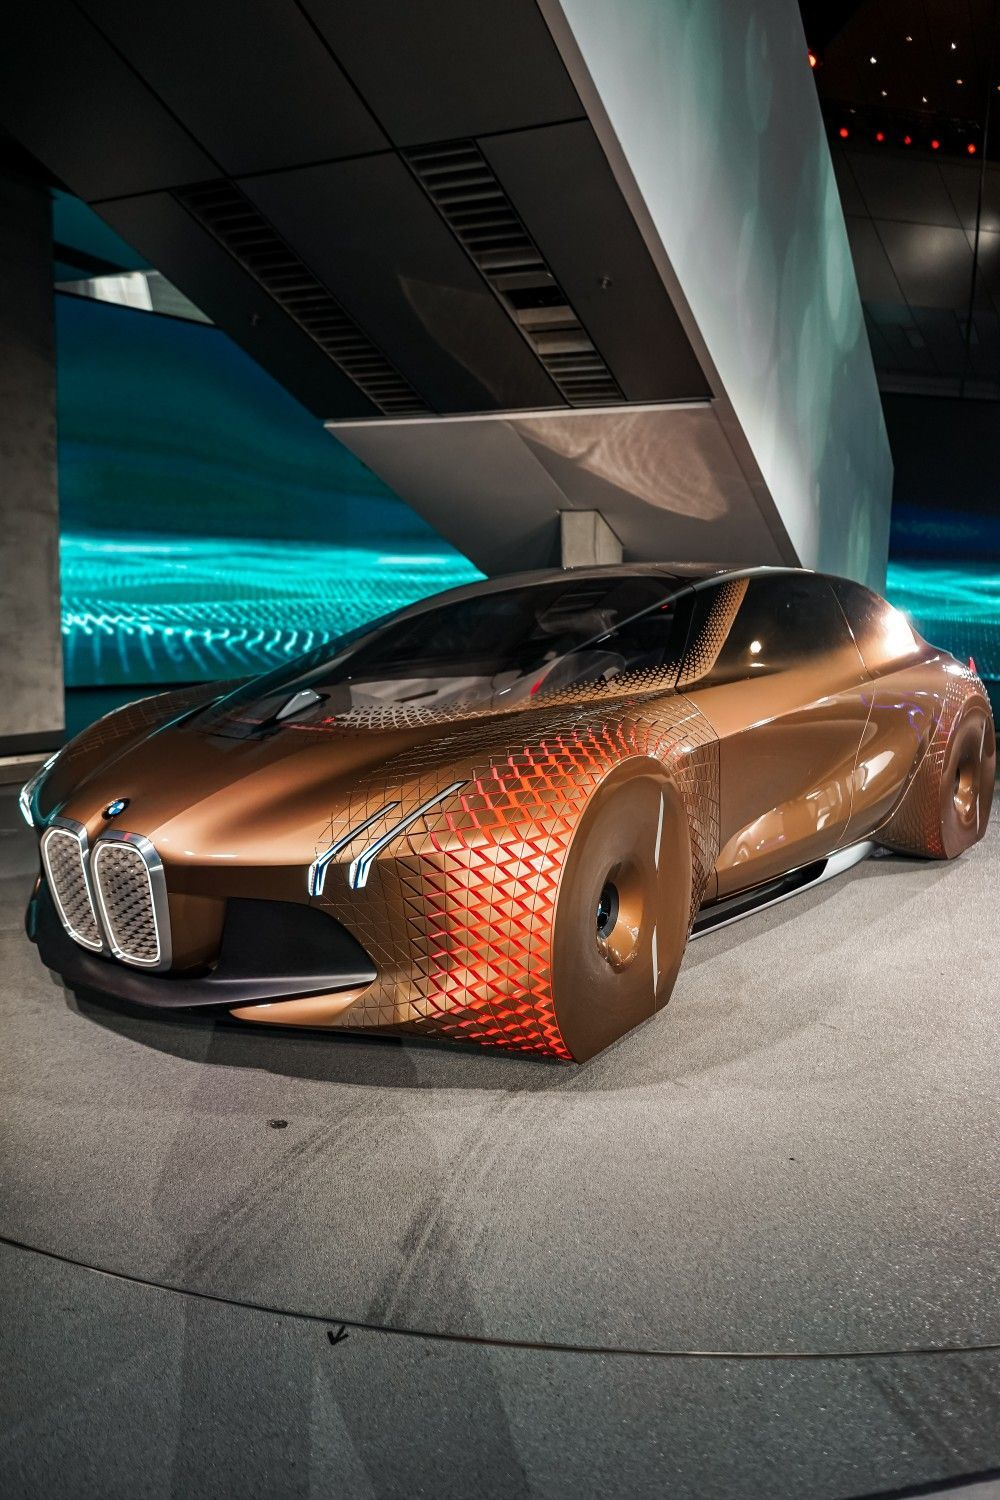 bmw vision next 100 conceptcars (With images) Sports